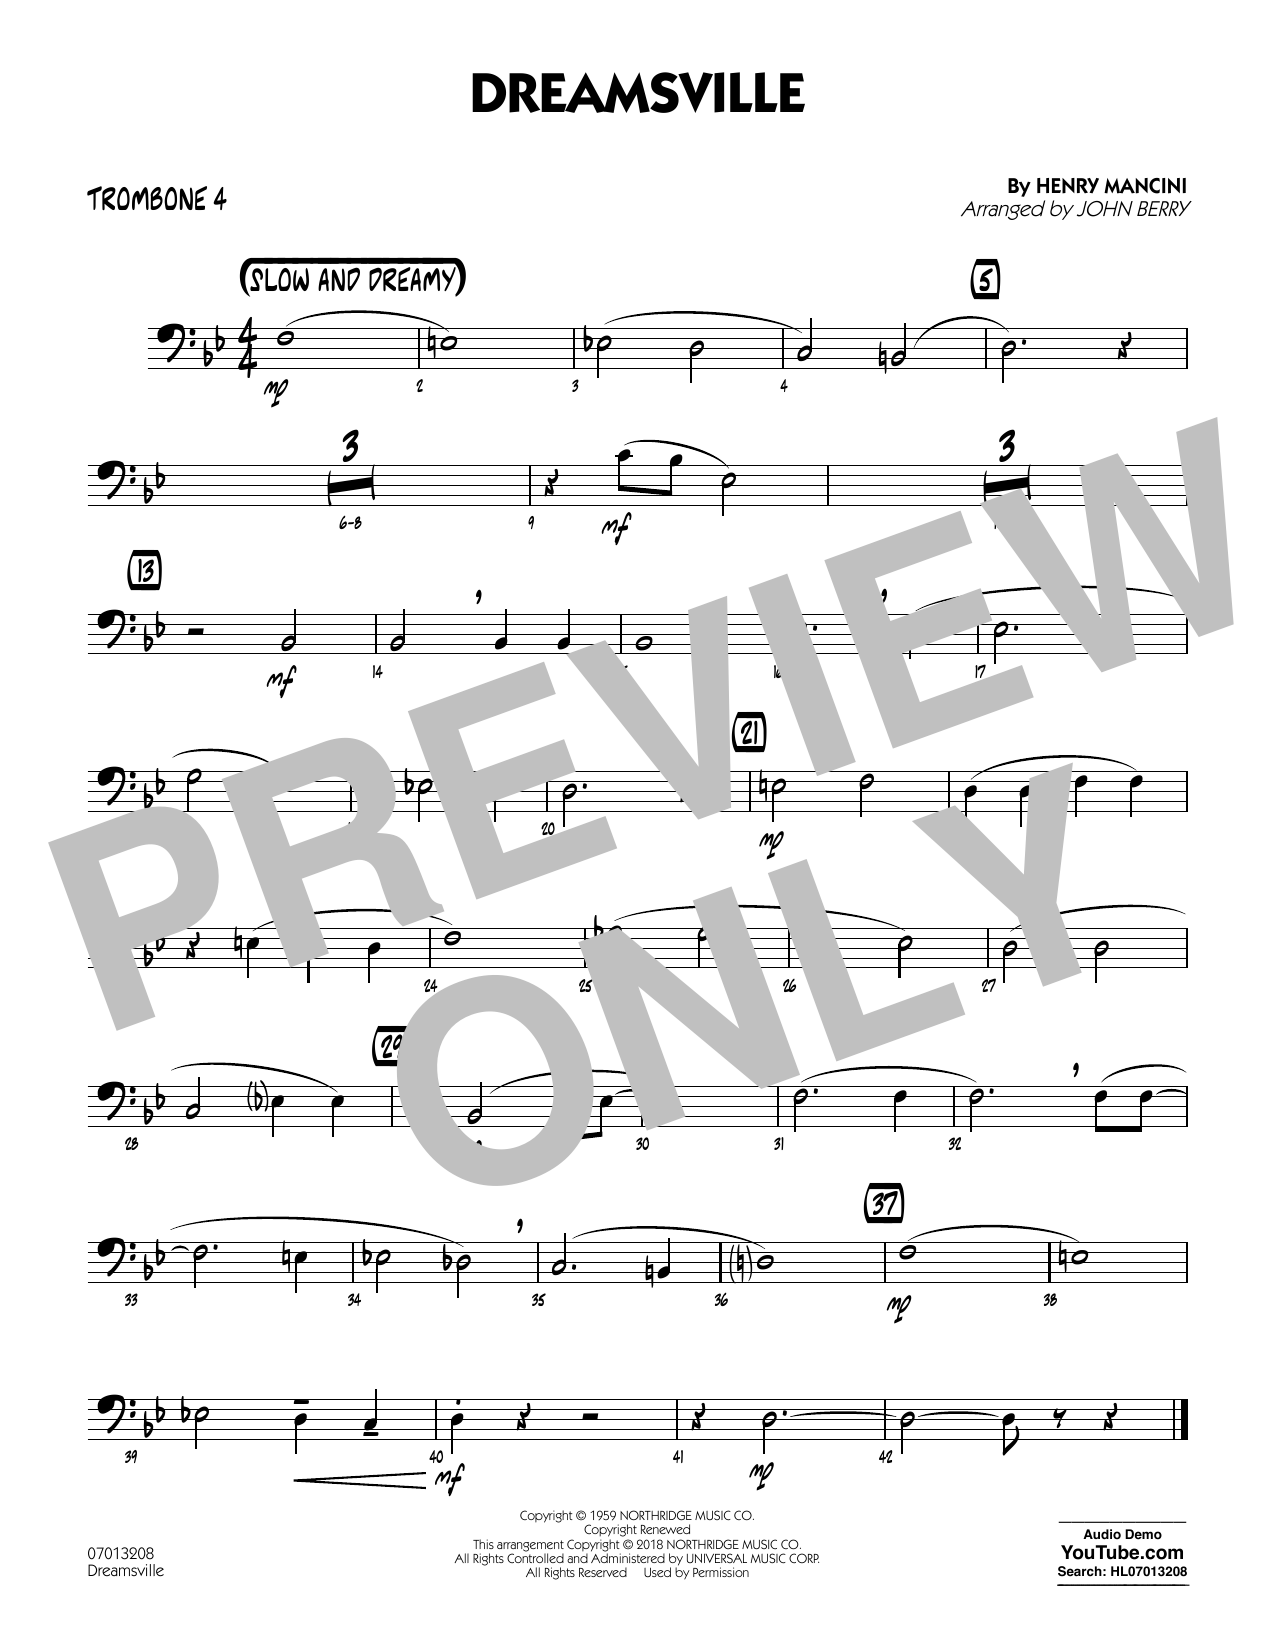 John Berry Dreamsville - Trombone 4 sheet music notes and chords. Download Printable PDF.